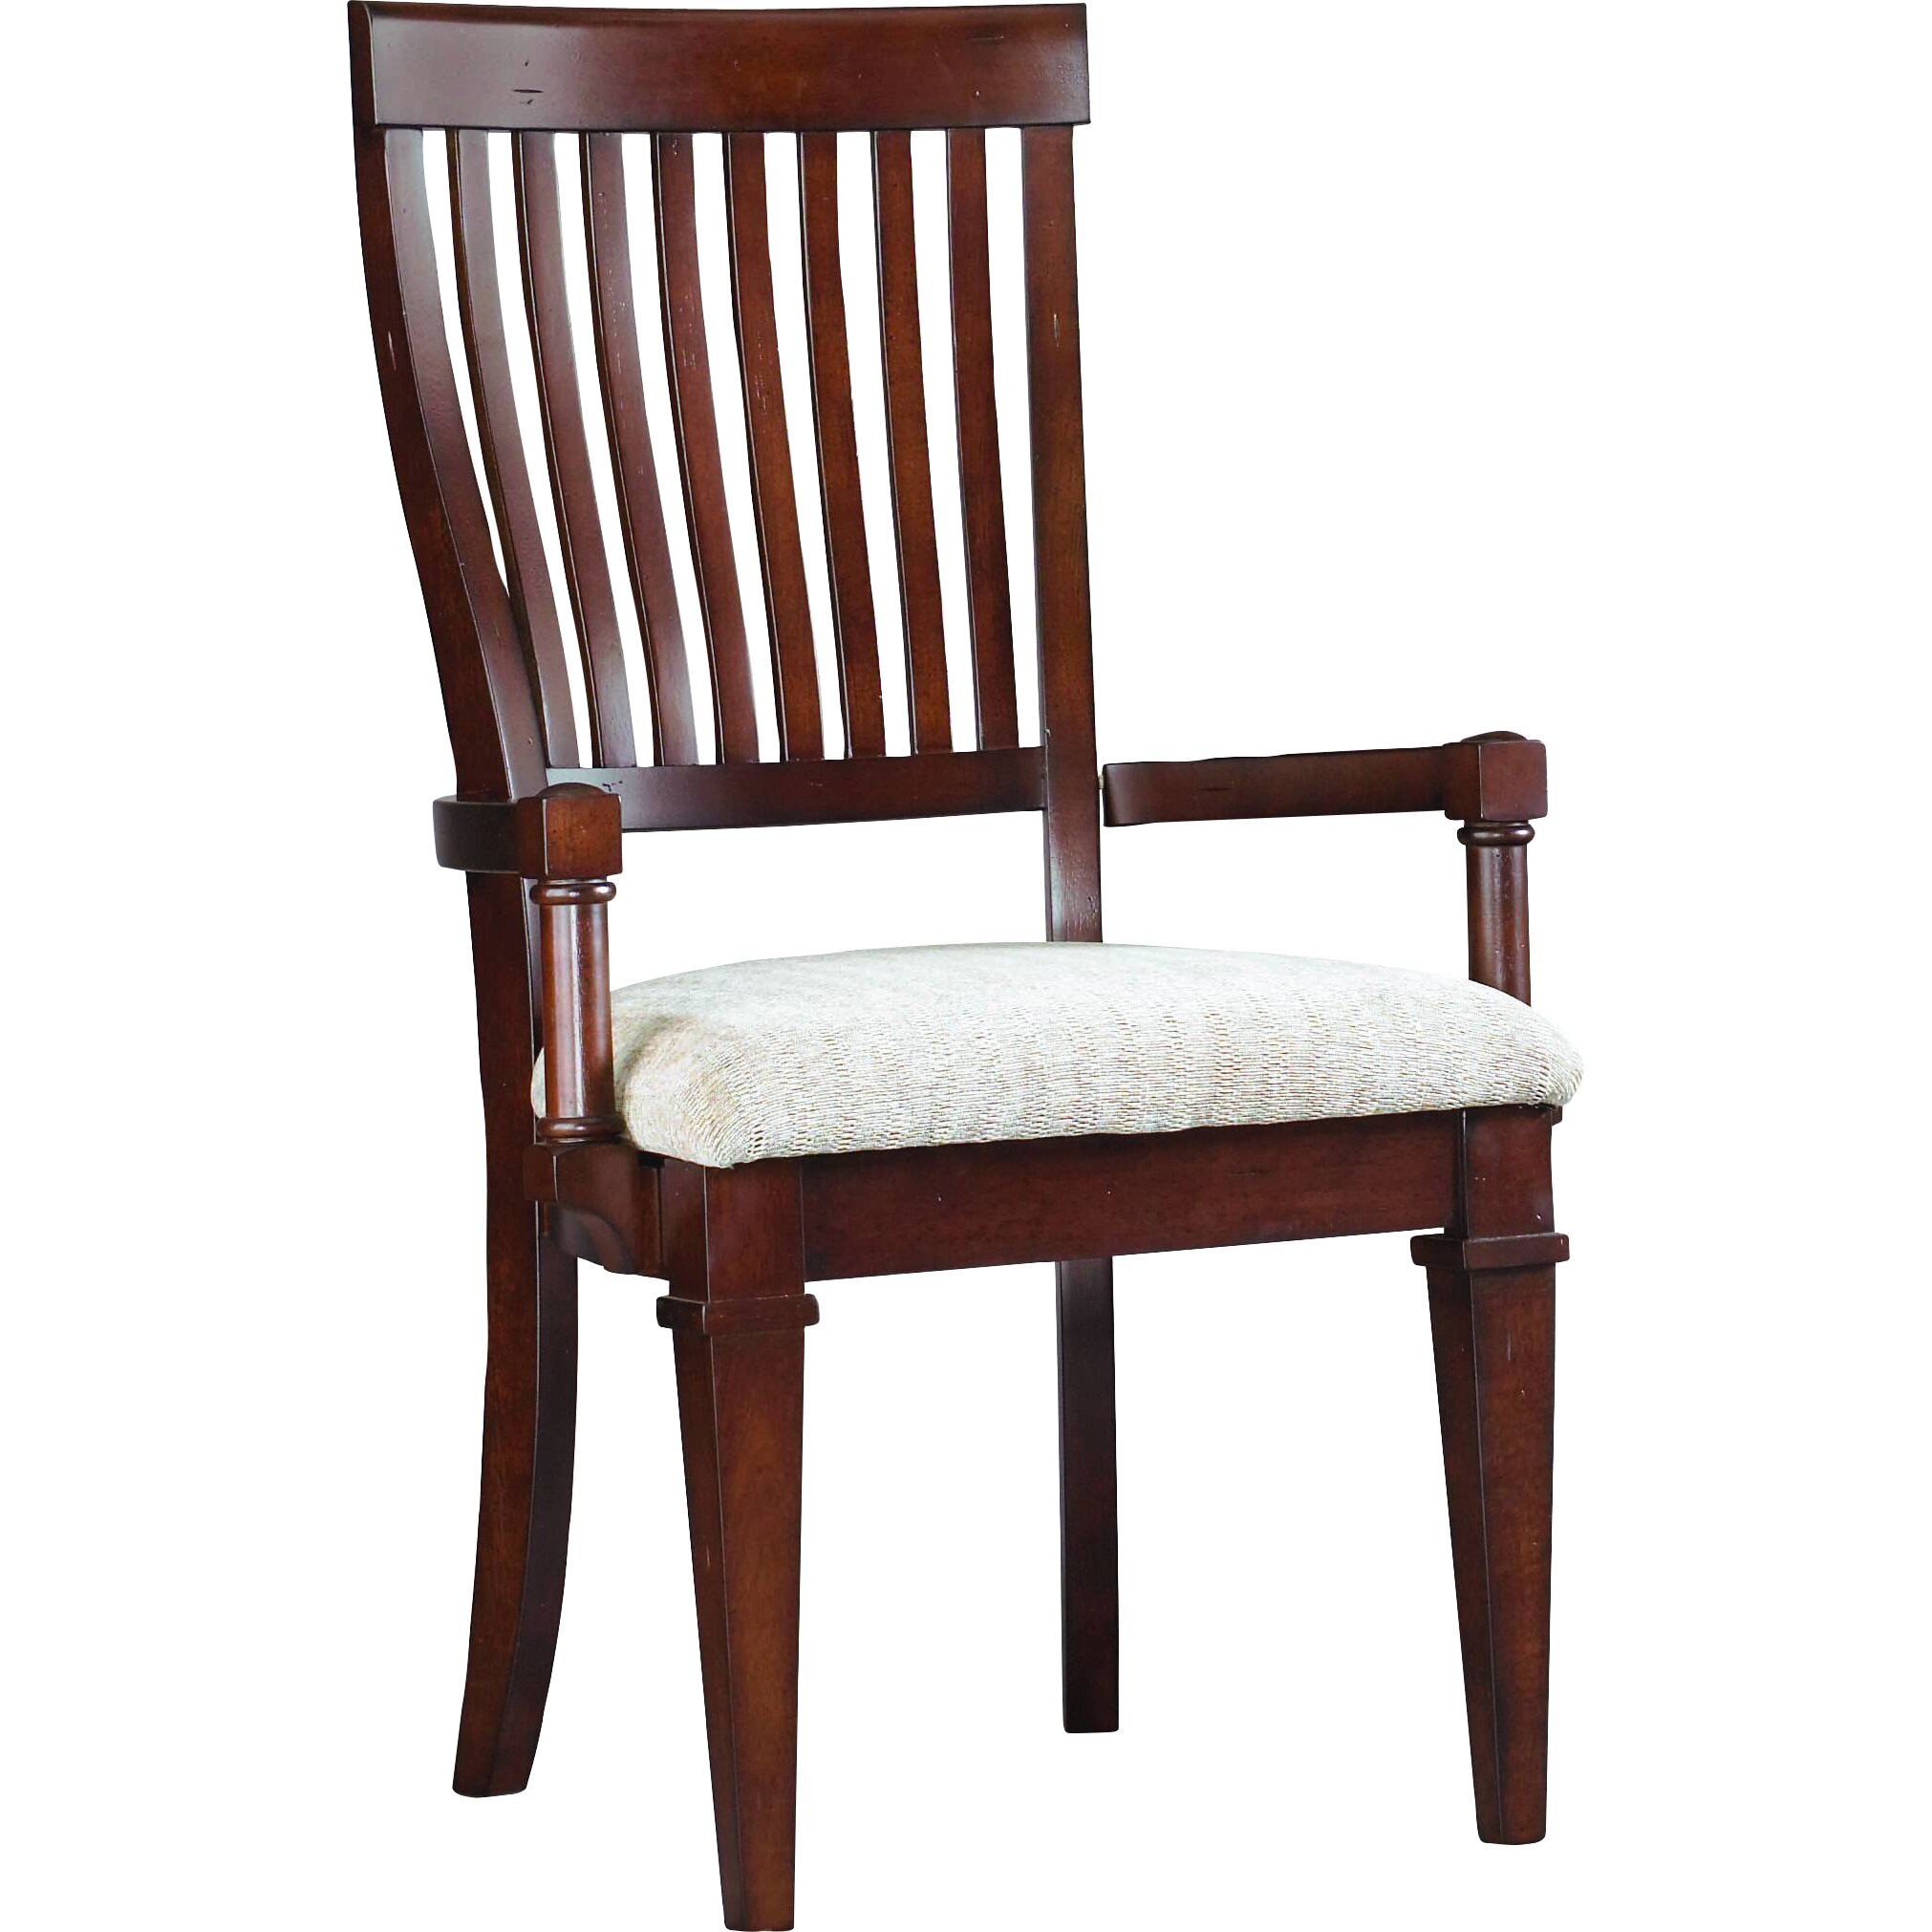 Hooker furniture abbott place slat back arm chair wayfair for Place furniture